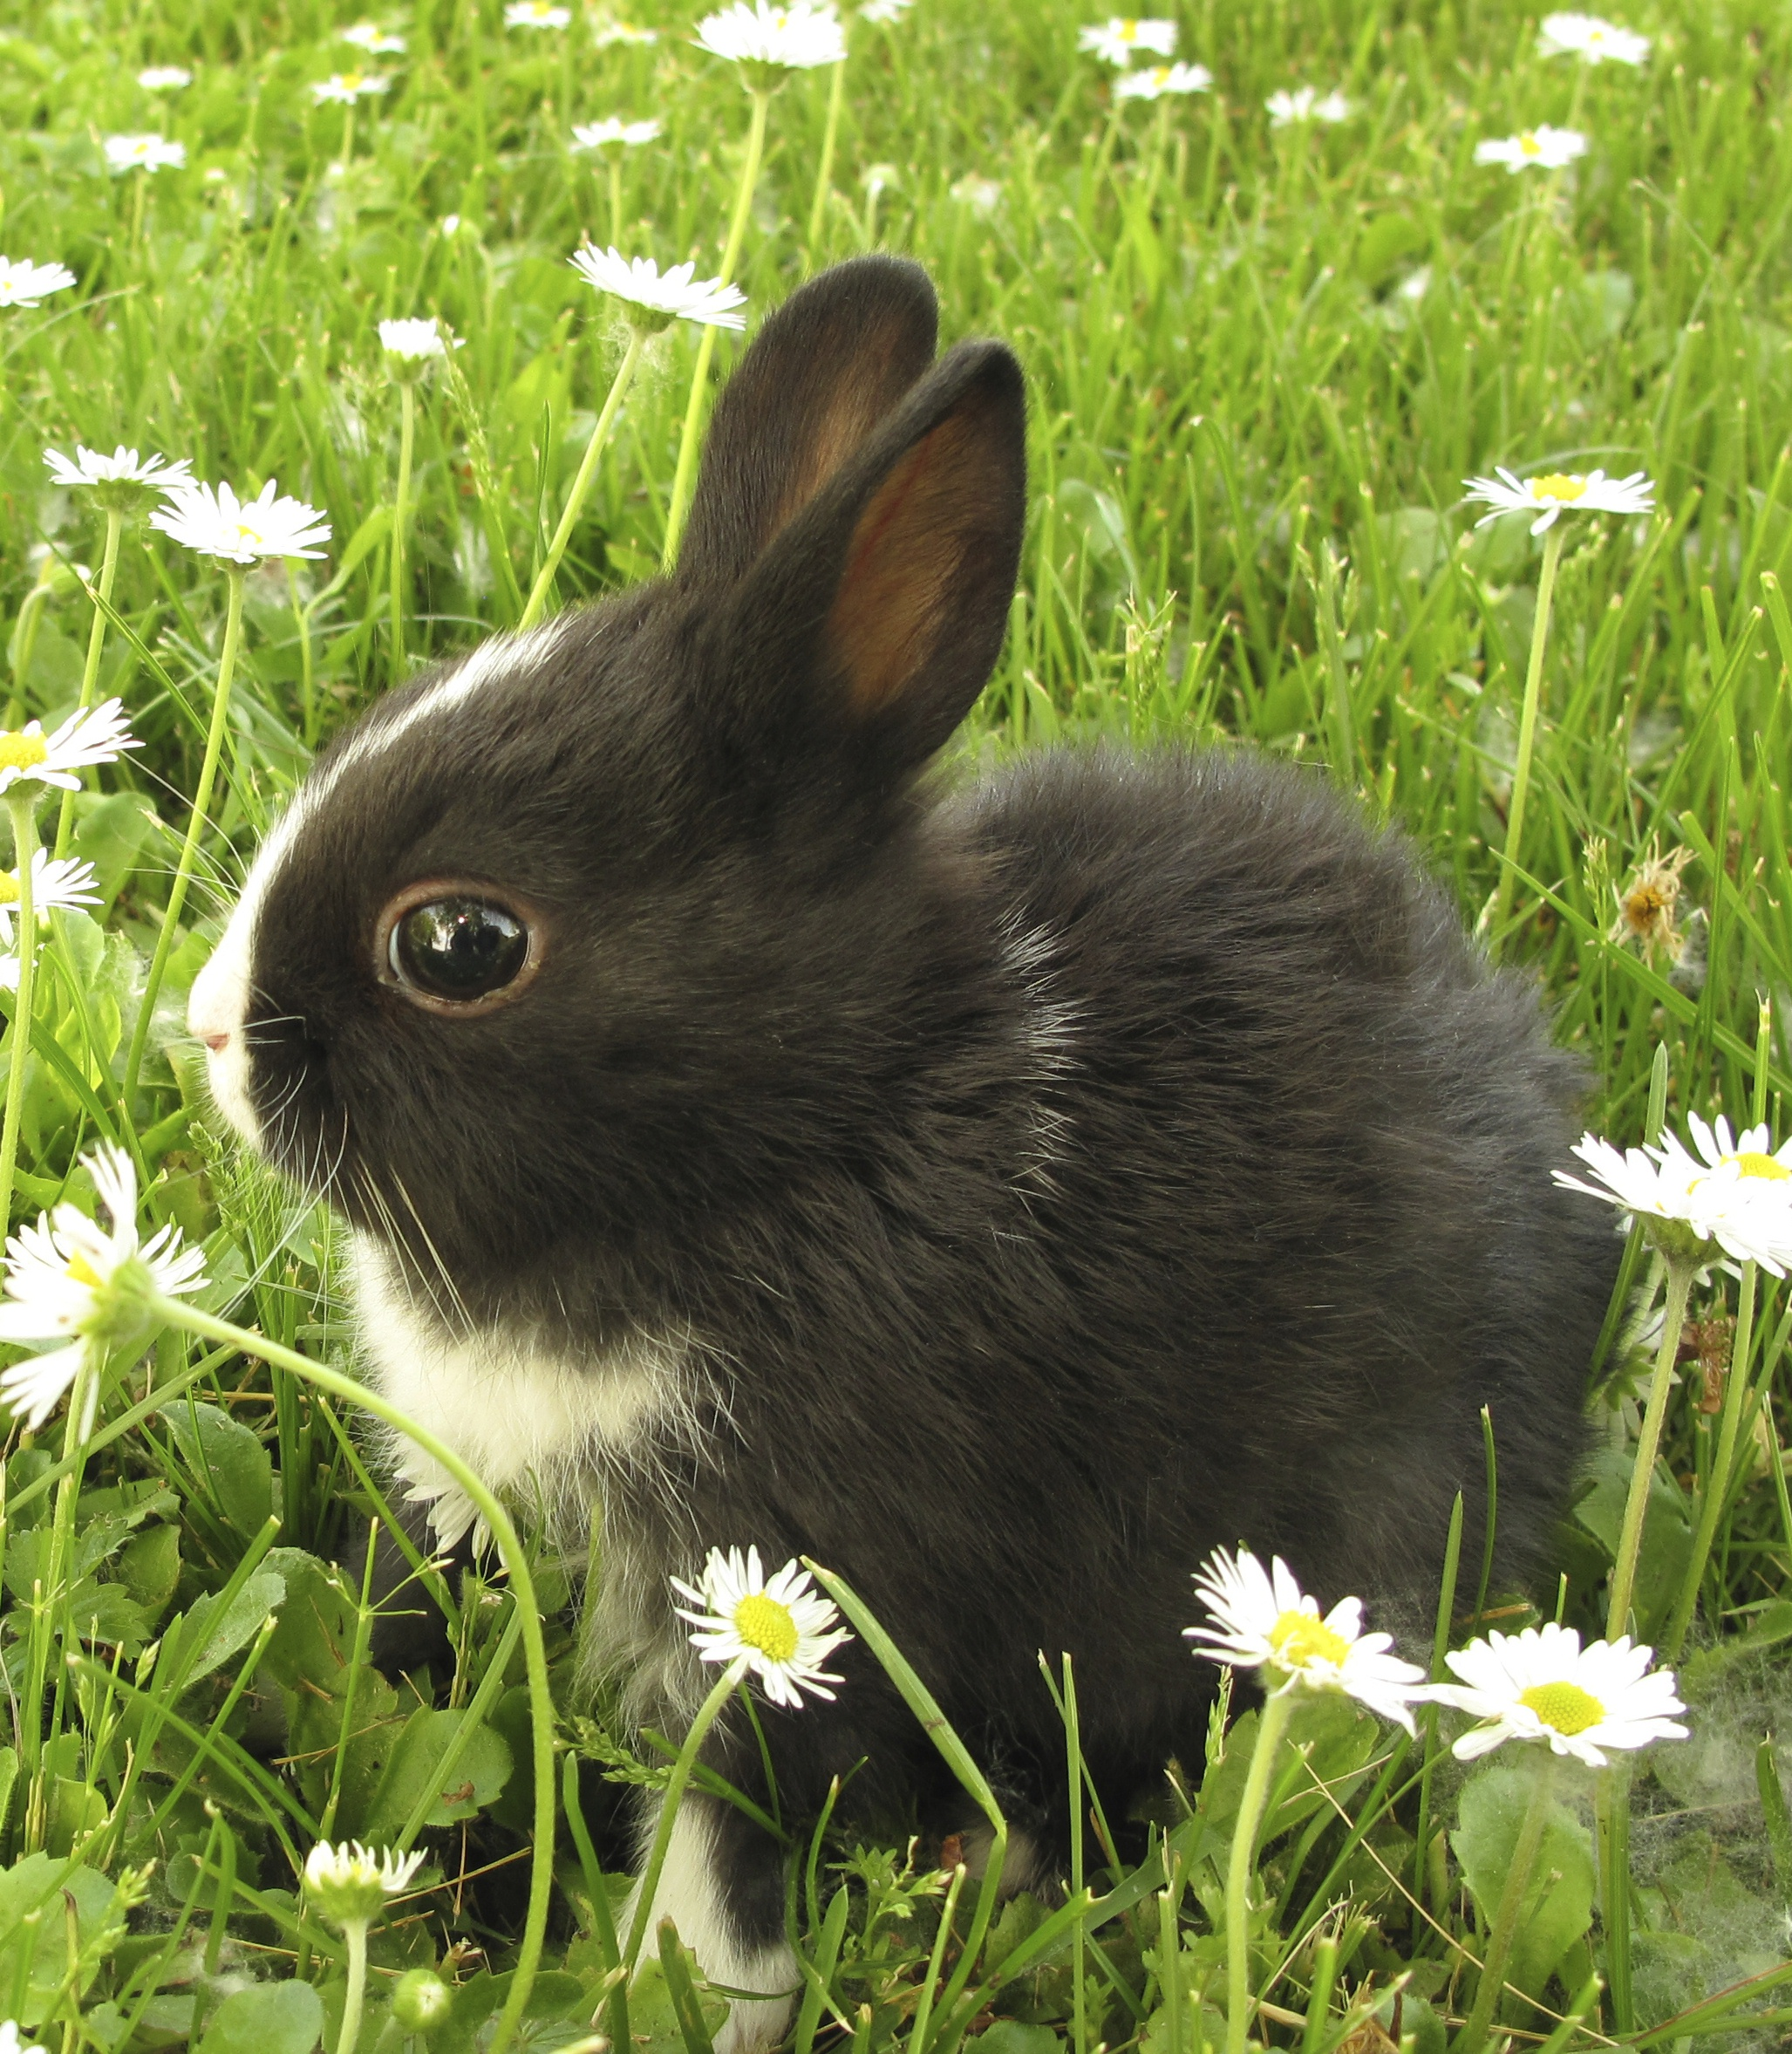 rabbit_black___white_in_grass_cropped.jpg